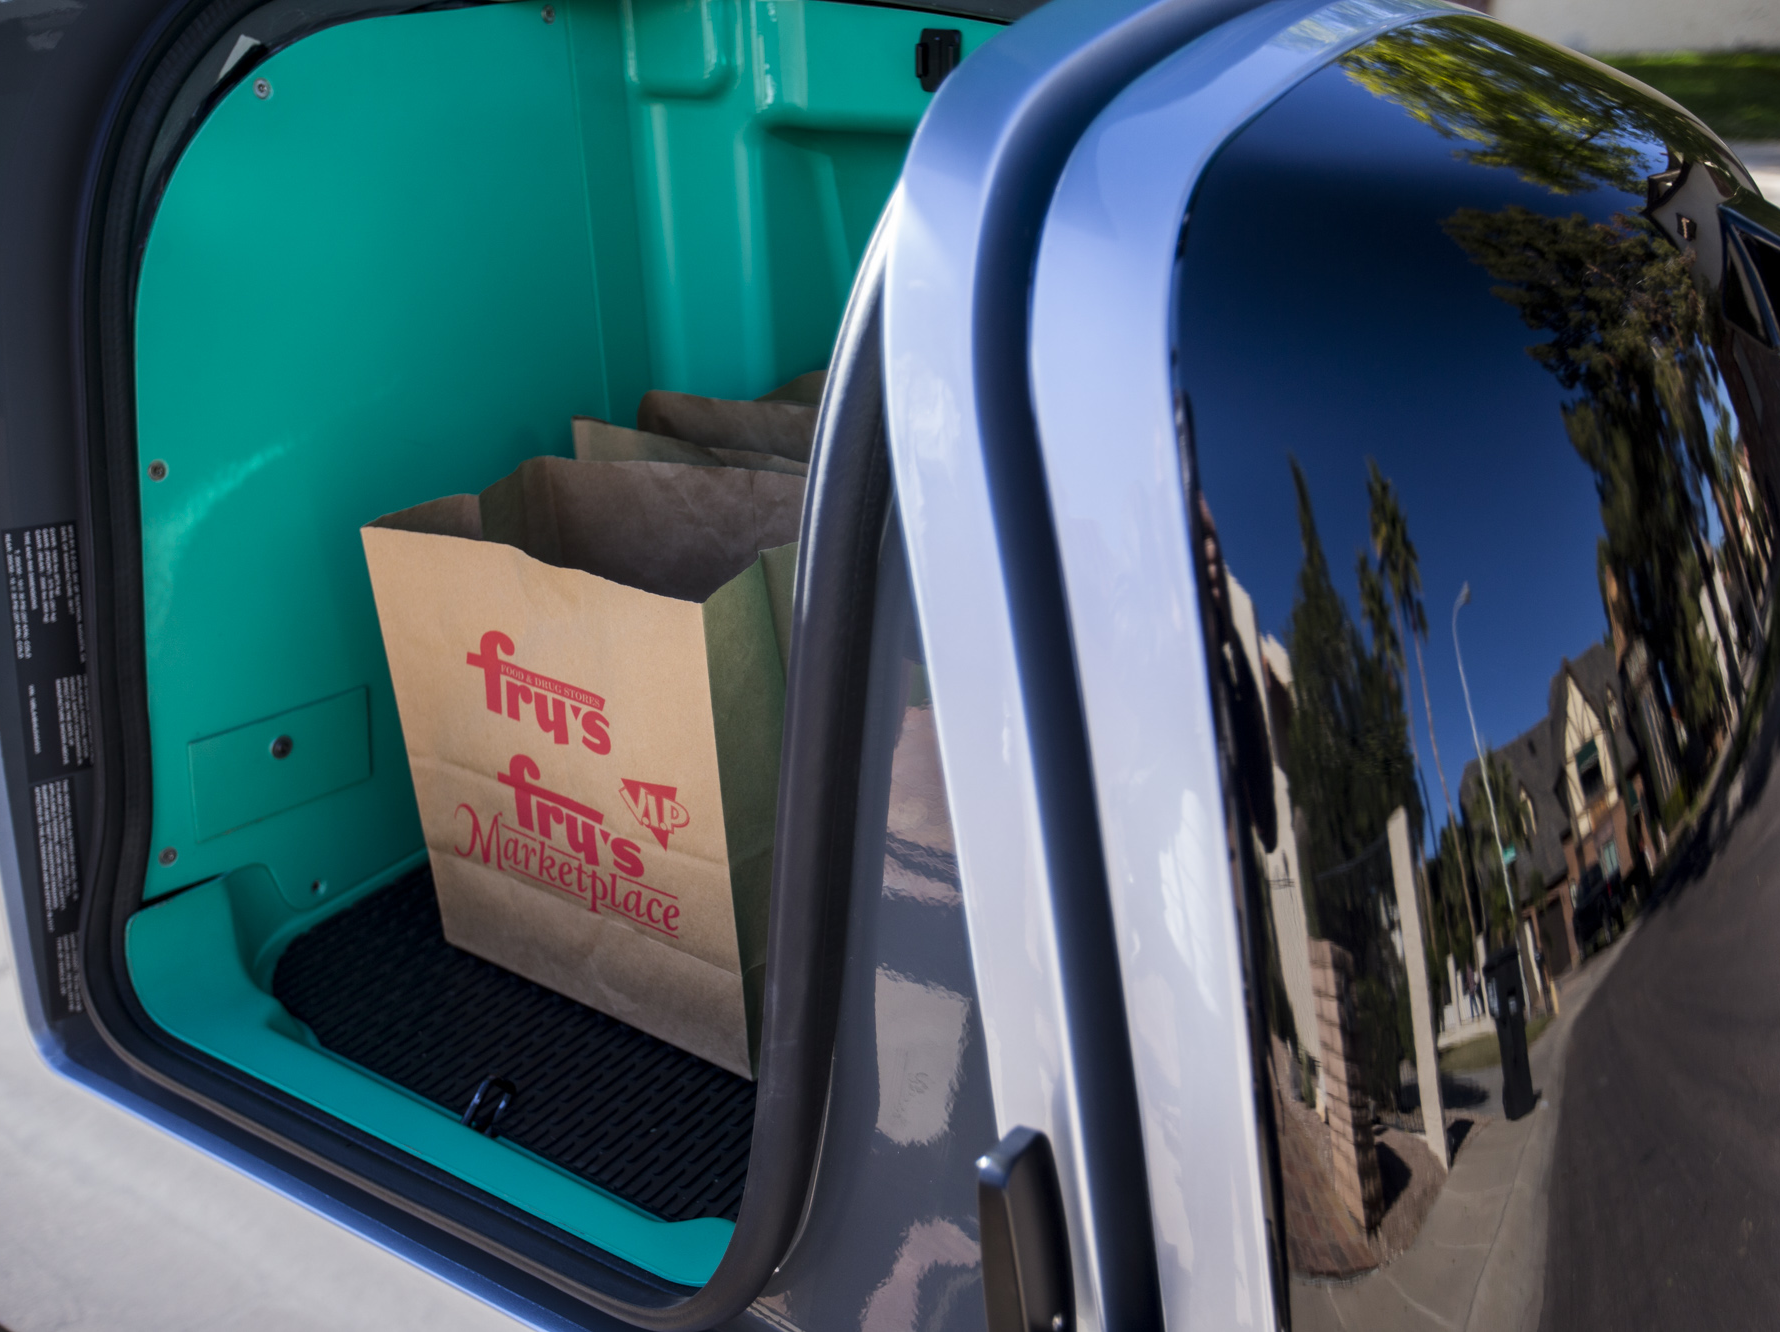 An autonomous Nuro vehicle drives near Eldorado Park on Jan. 22, 2019, in Scottsdale, Ariz. Nuro has partnered with Fry's Food Stores to use the robot vehicles to deliver groceries in Scottsdale.